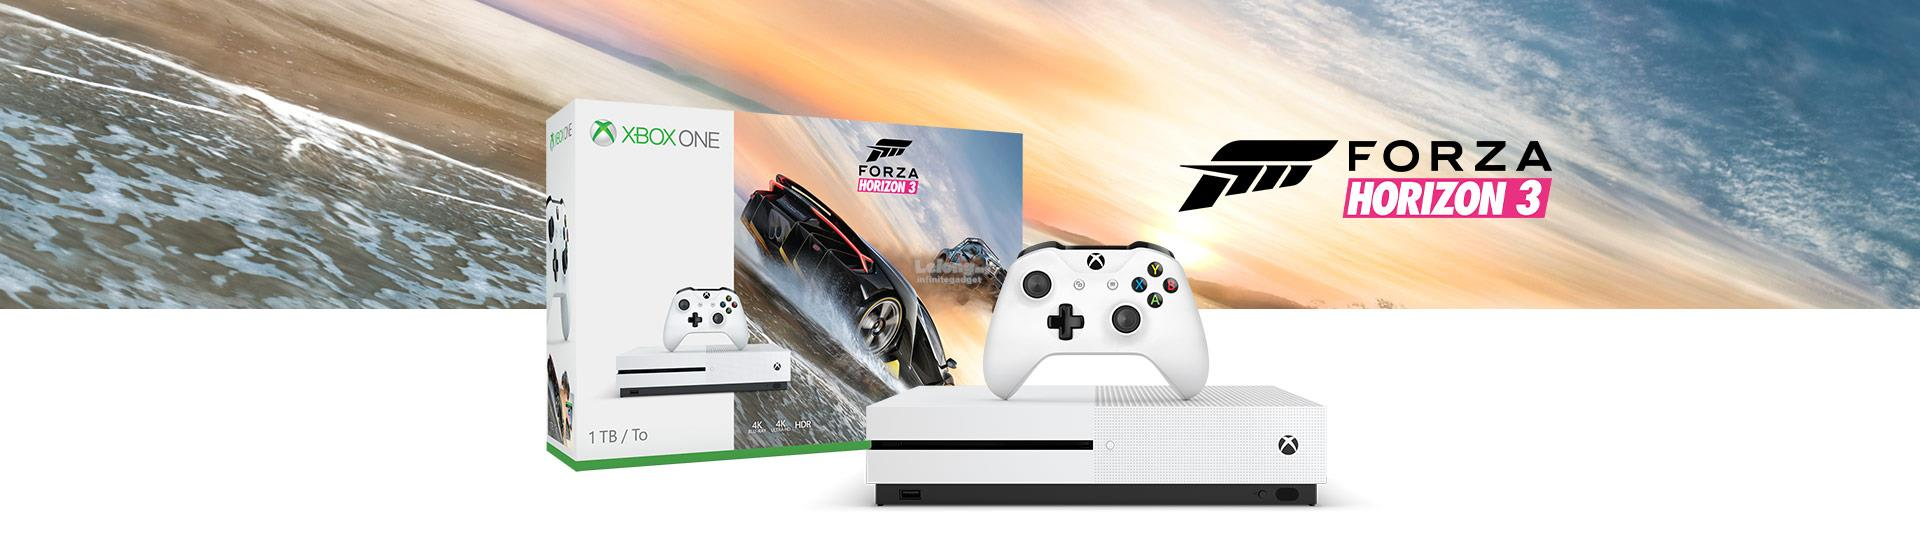 Microsoft Xbox One S 1000GB 1TB Forza Horizon 3 Bundle Asia White